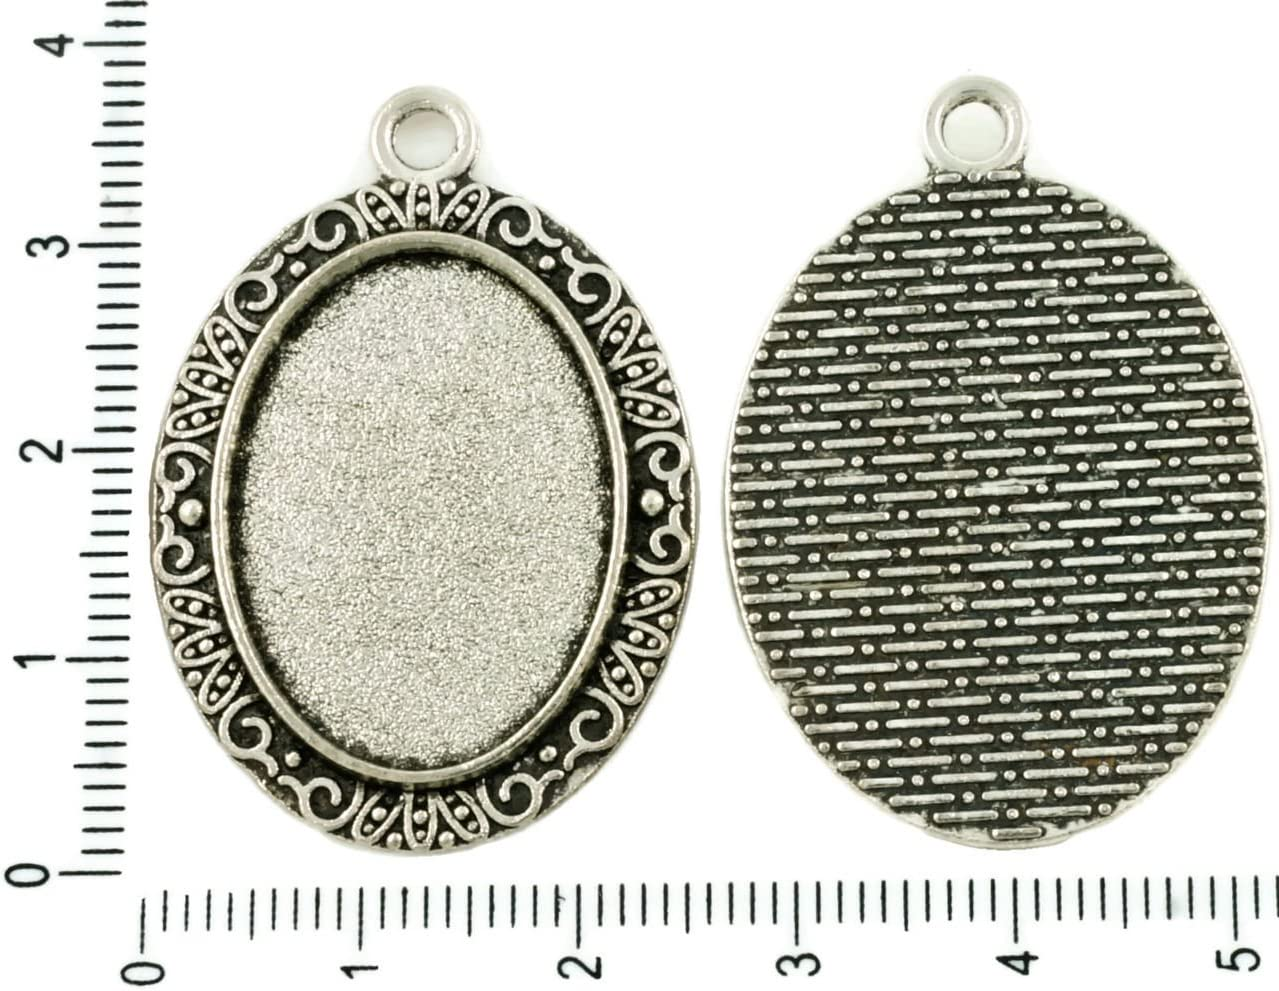 Cameo Base Pendant Blanks Round Bezel Trays BA35 Fits 18mm Cab 10 or 50 Cabochon Settings Antique Silver Tone